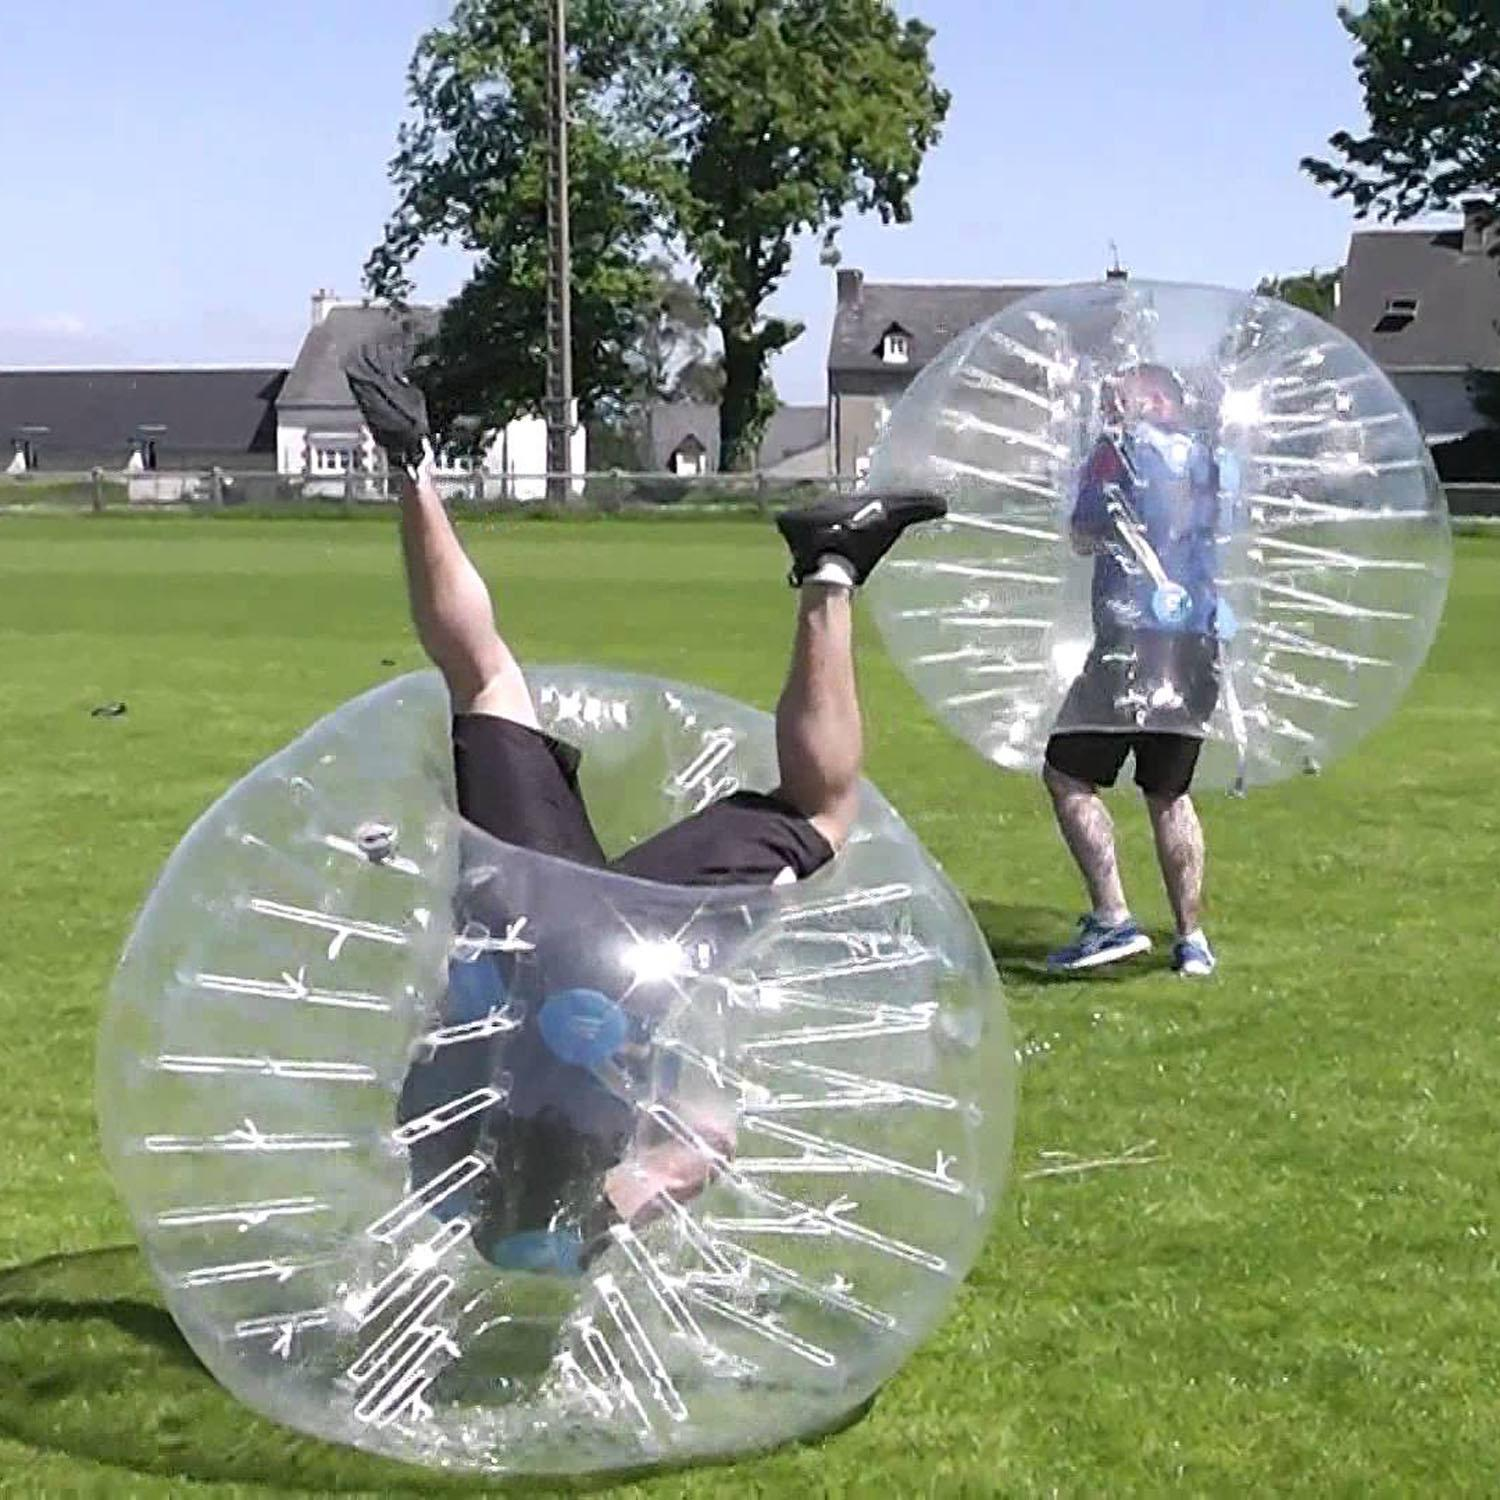 1.5M Diameter Inflatable PVC Transparent Bumperball Human Knocker Ball Bubble Soccer KMIMT by